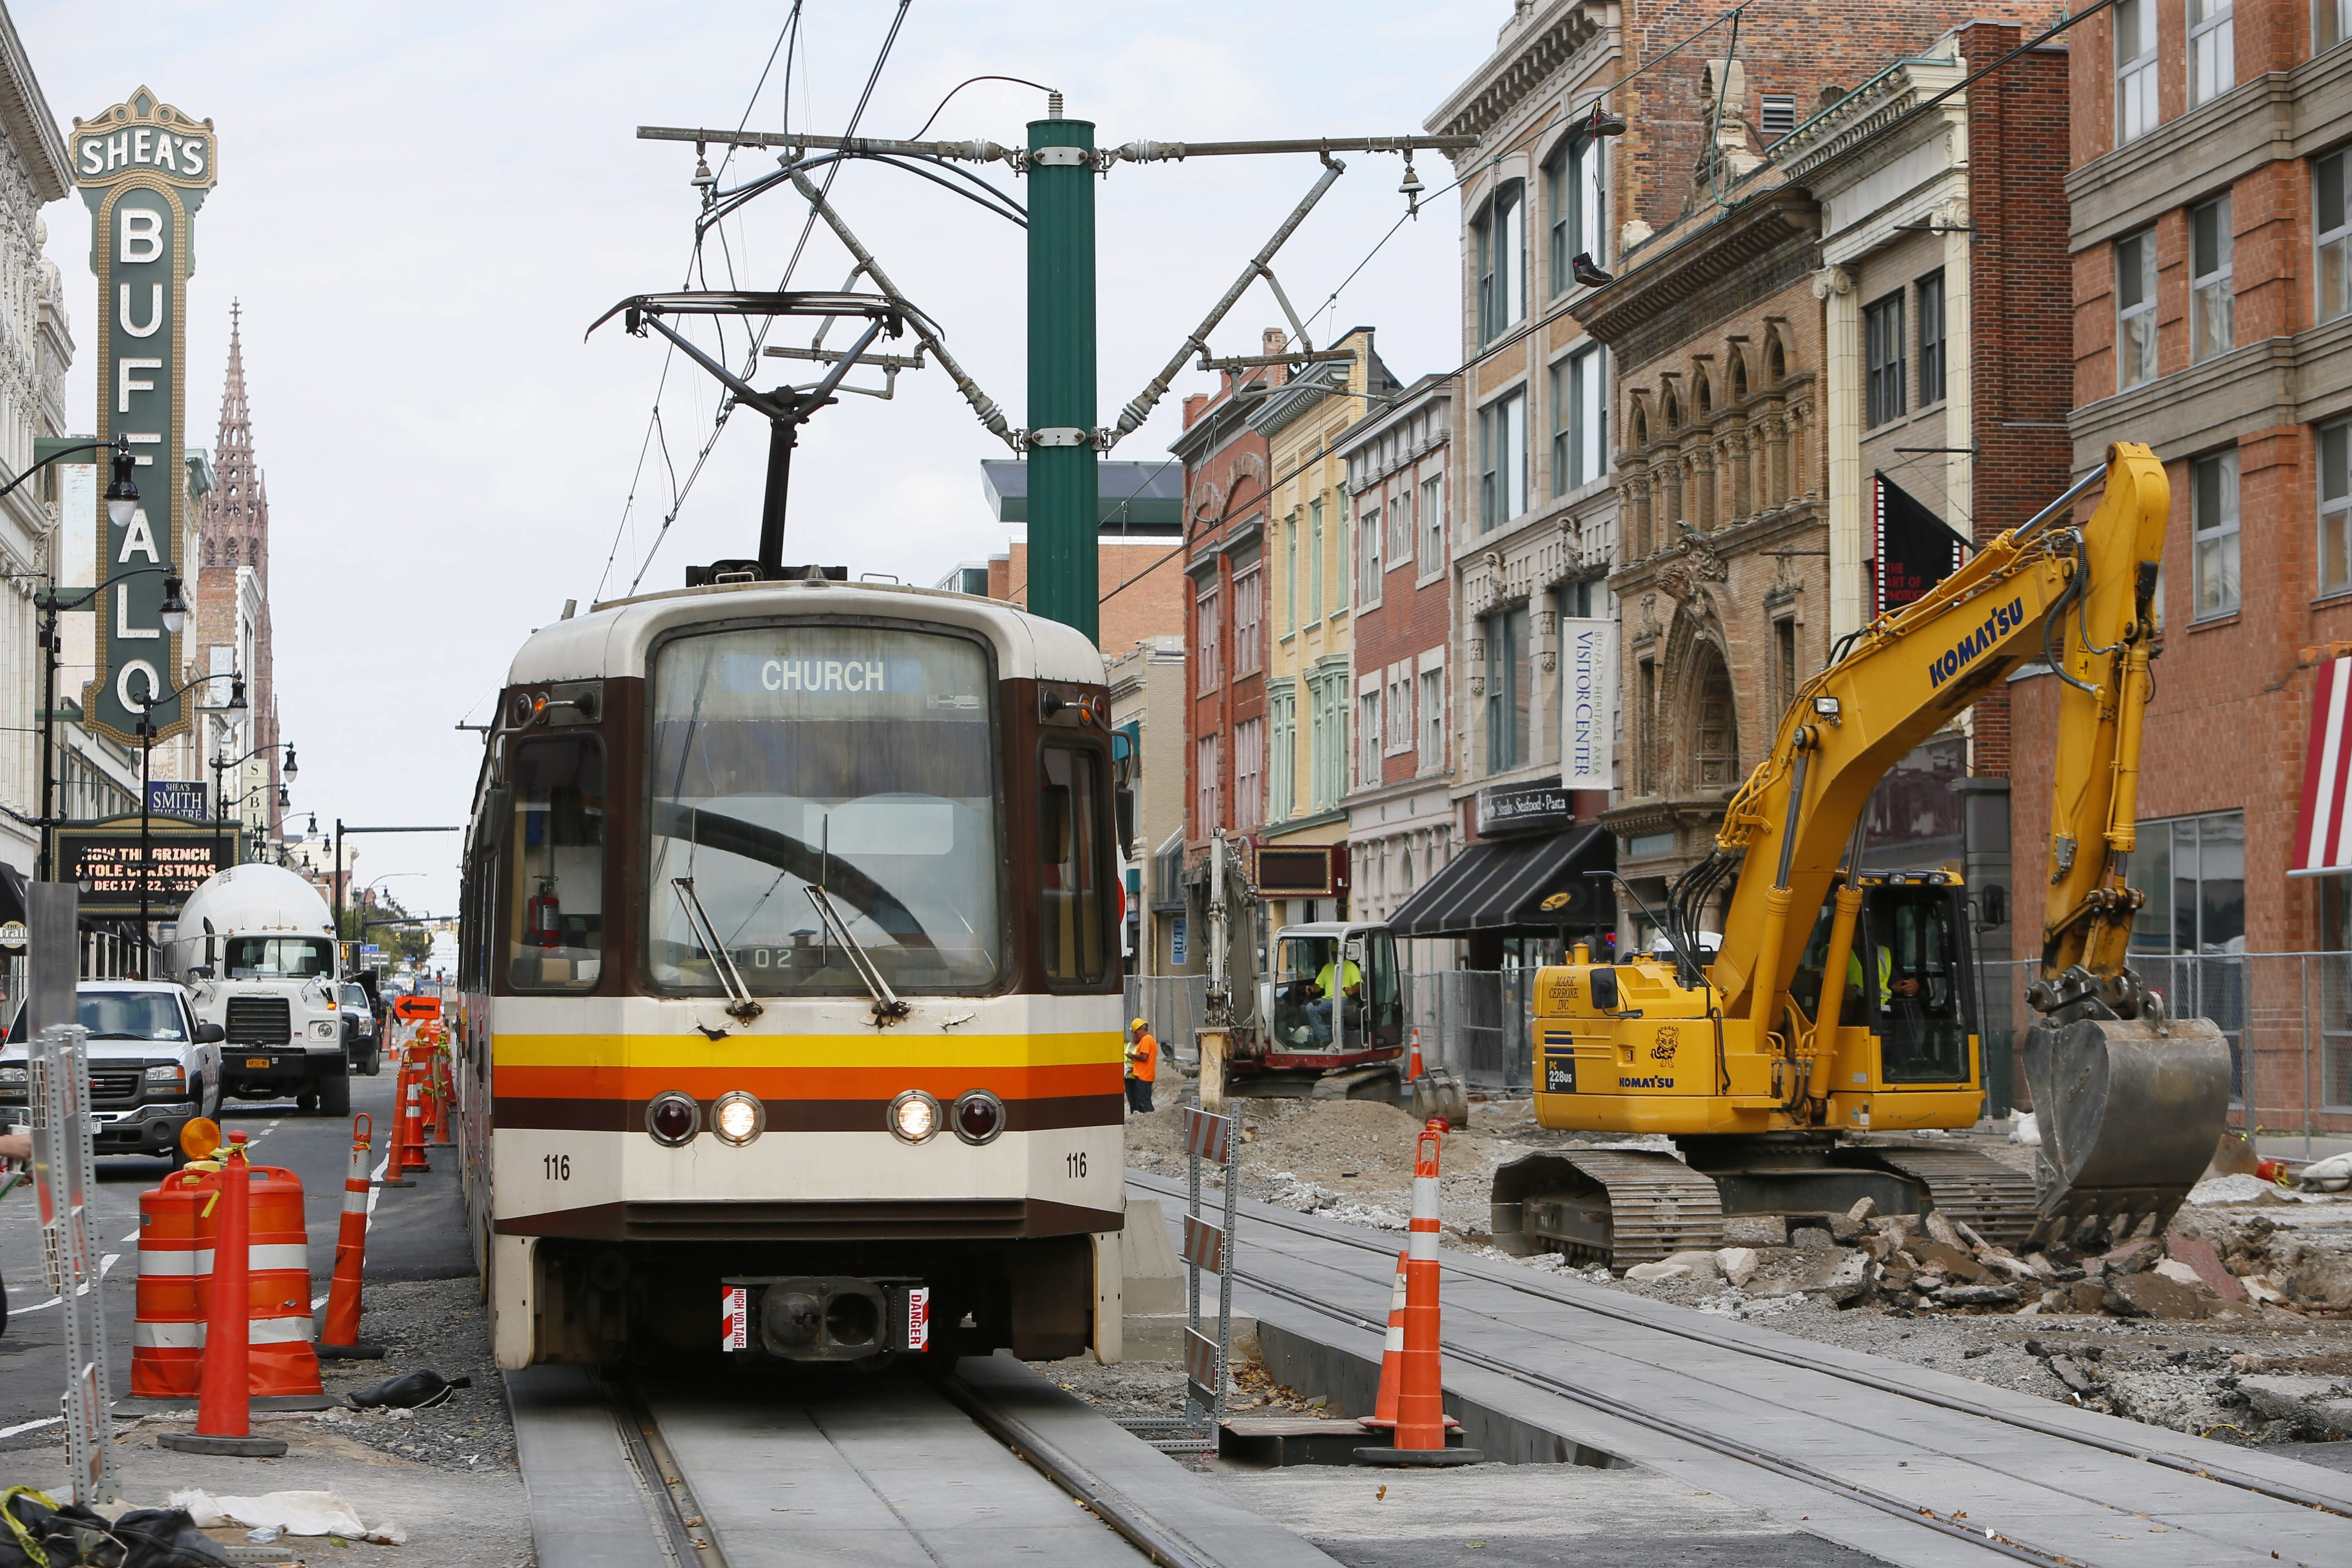 NFTA Metro Rail traffic is reduced to one track on the 600 block of Main Street as construction continues on the project to return cars to Main Street.